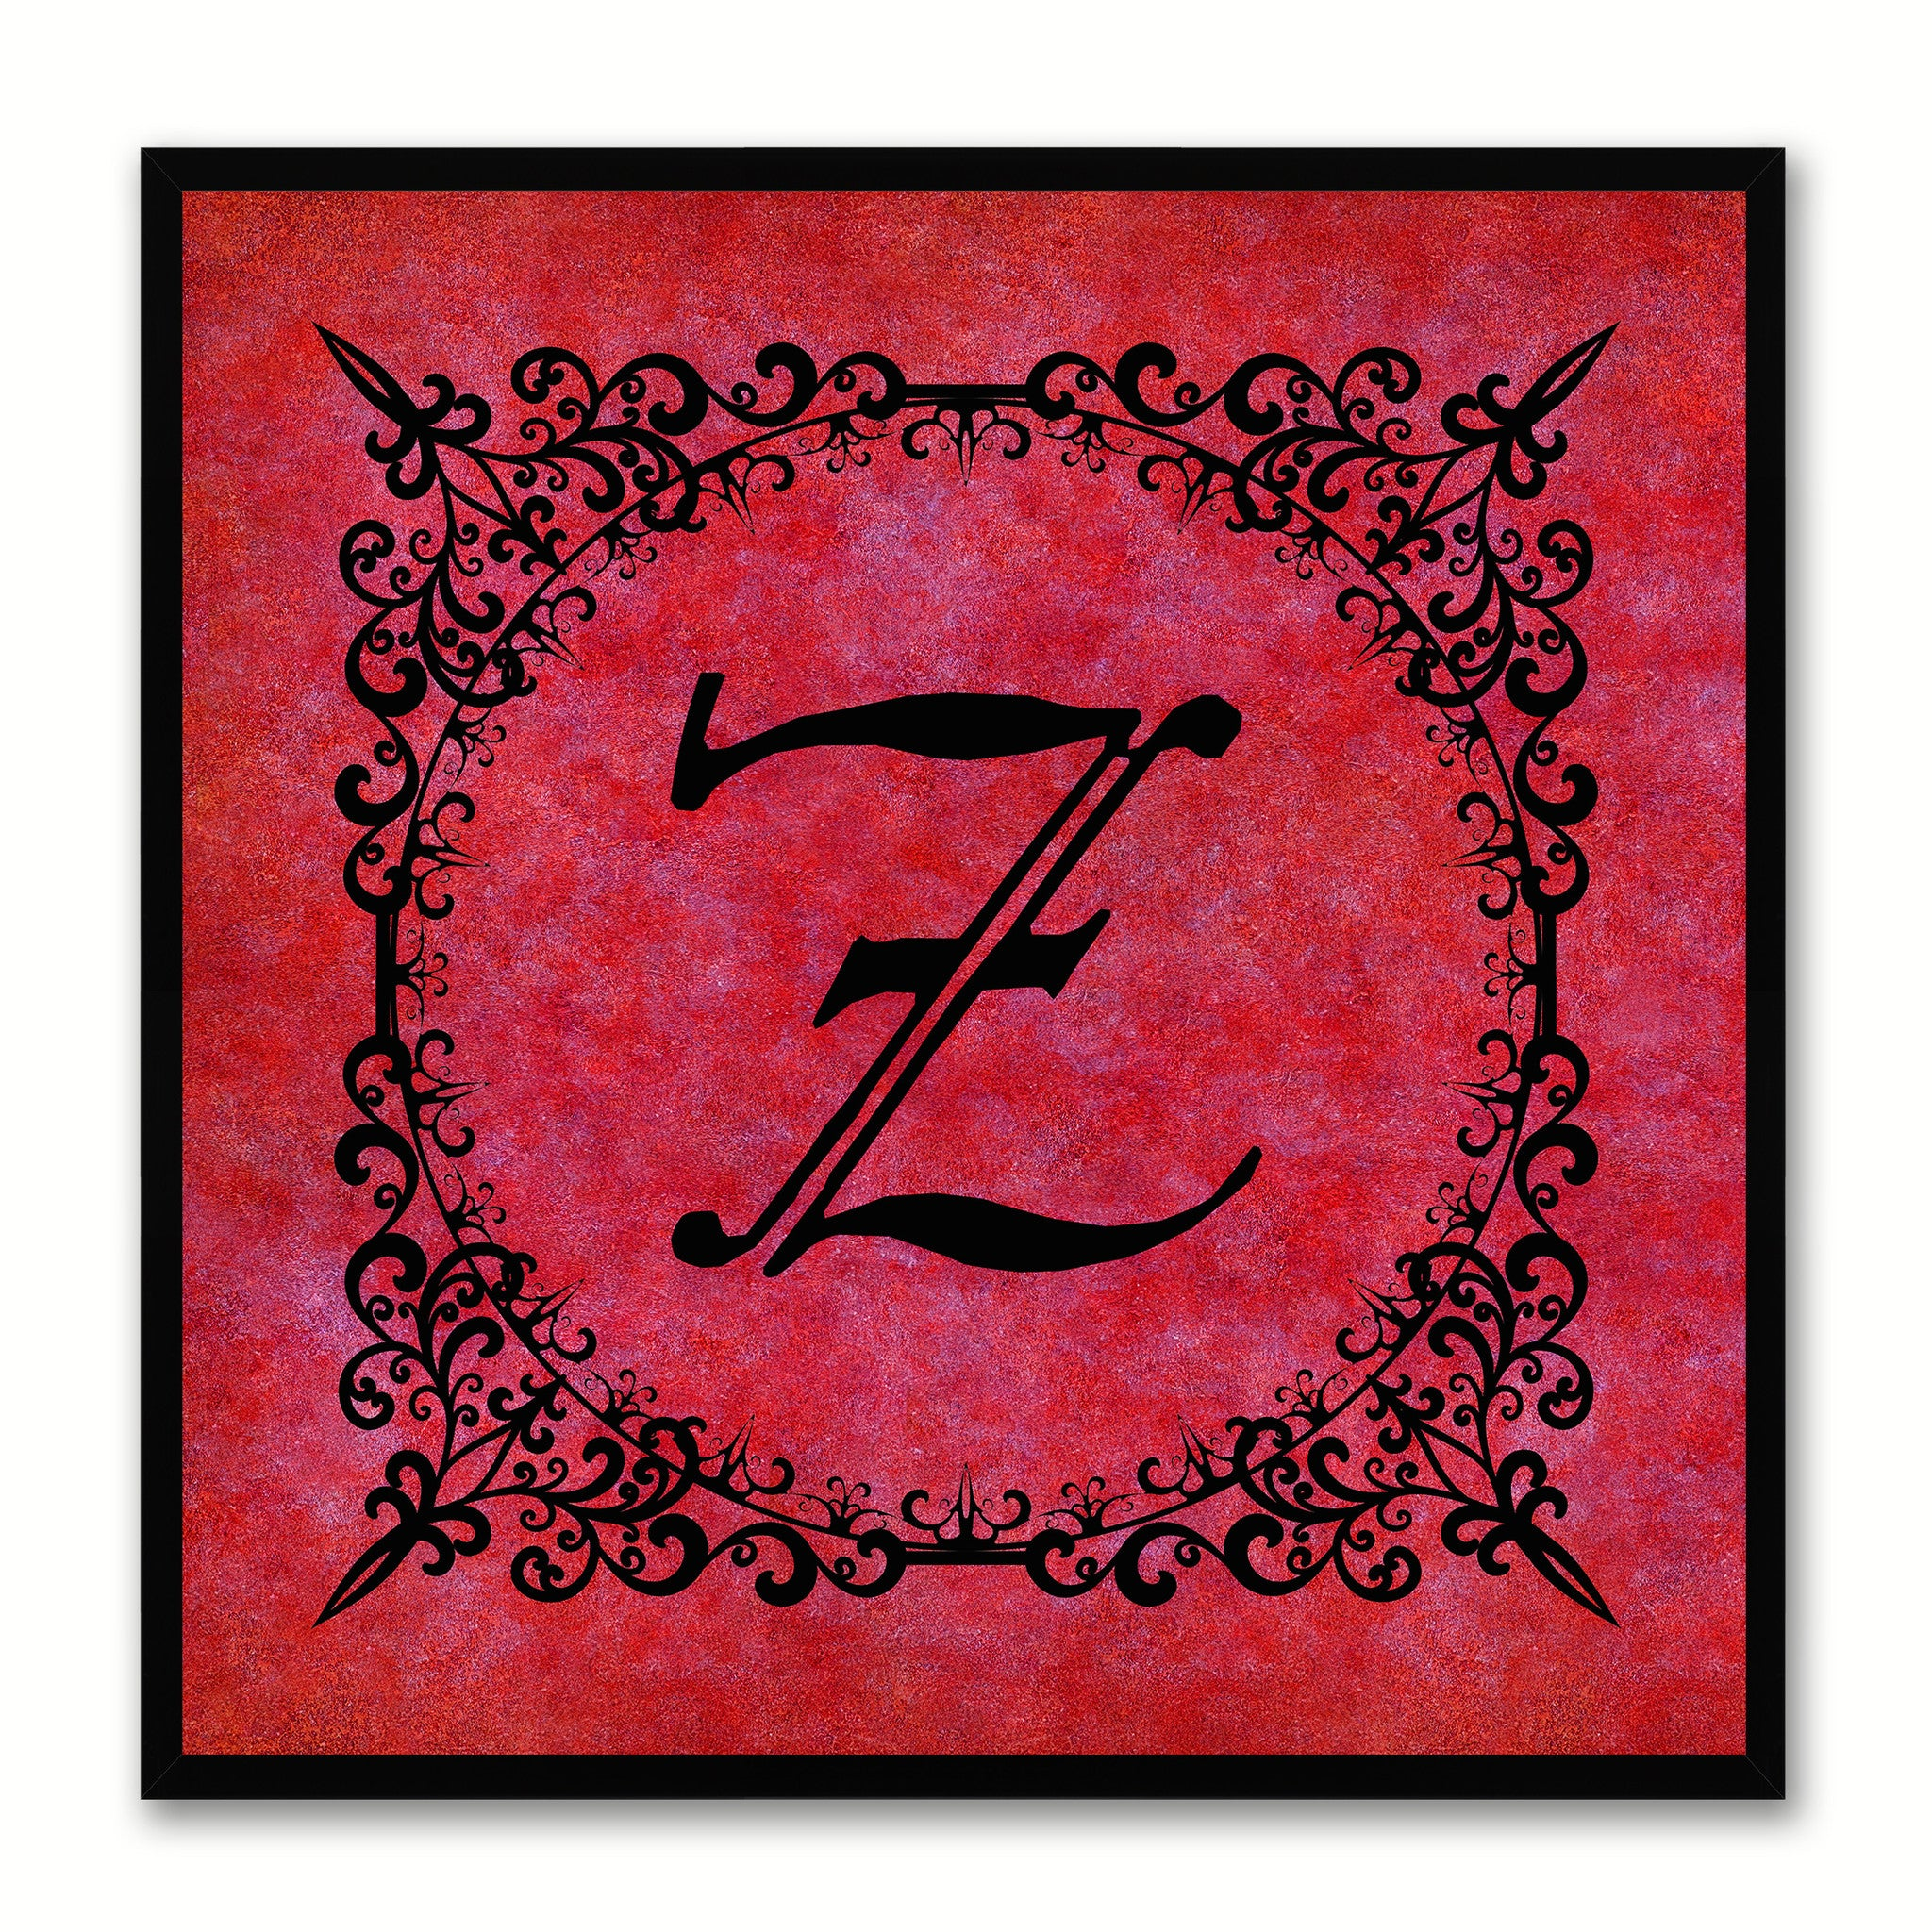 Alphabet Z Red Canvas Print Black Frame Kids Bedroom Wall Décor Home Art